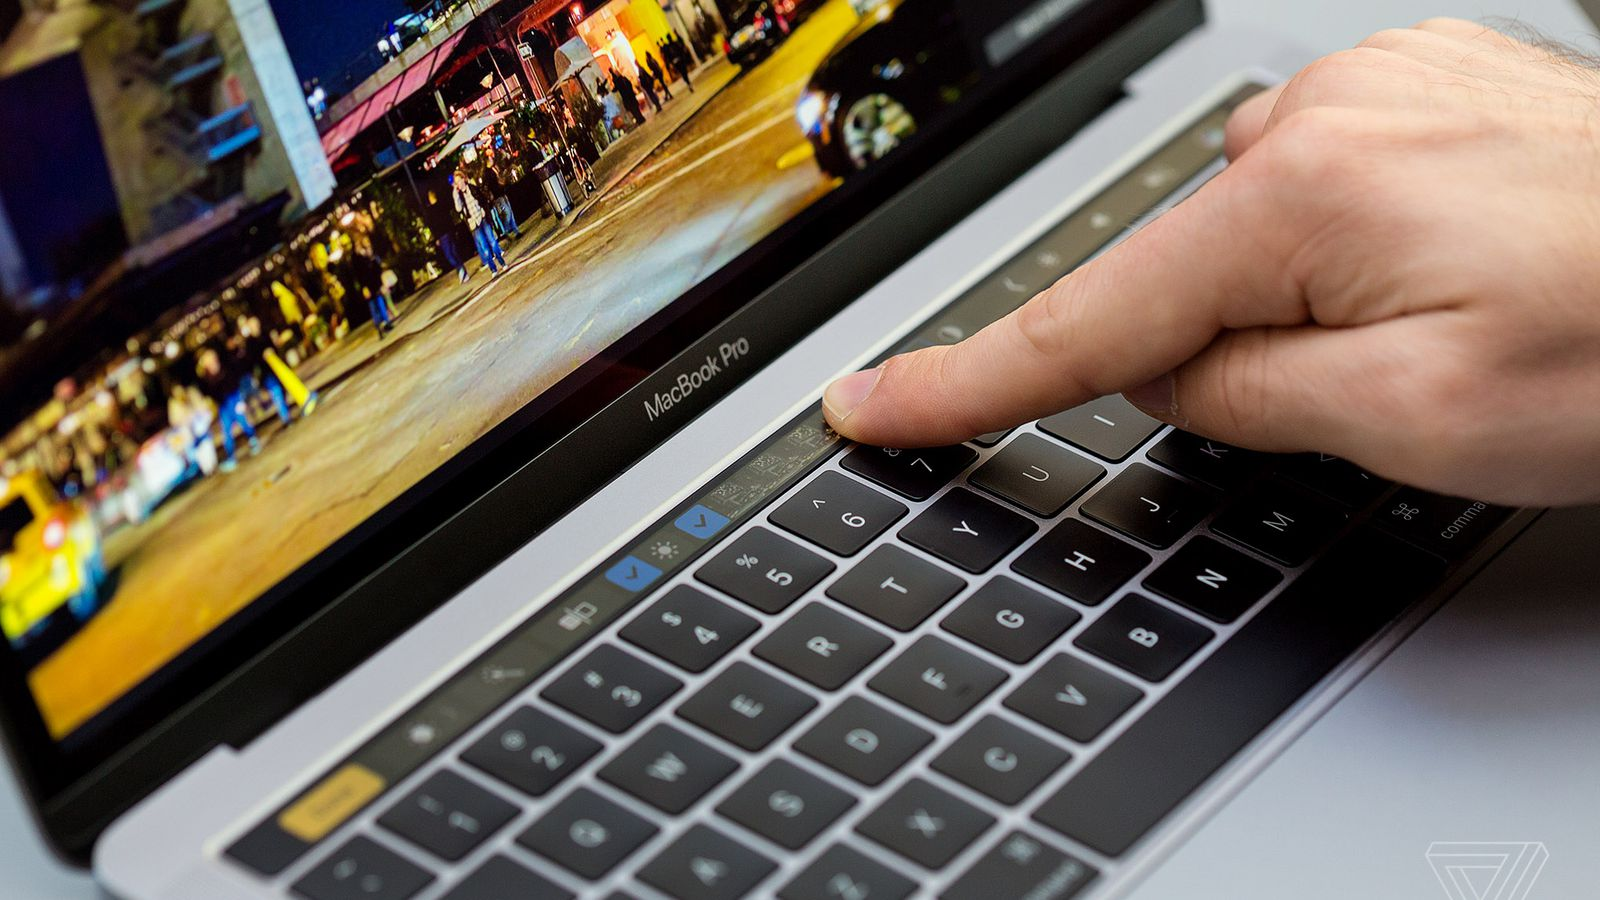 Apple says a bug caused Consumer Reports' MacBook Pro battery life issues